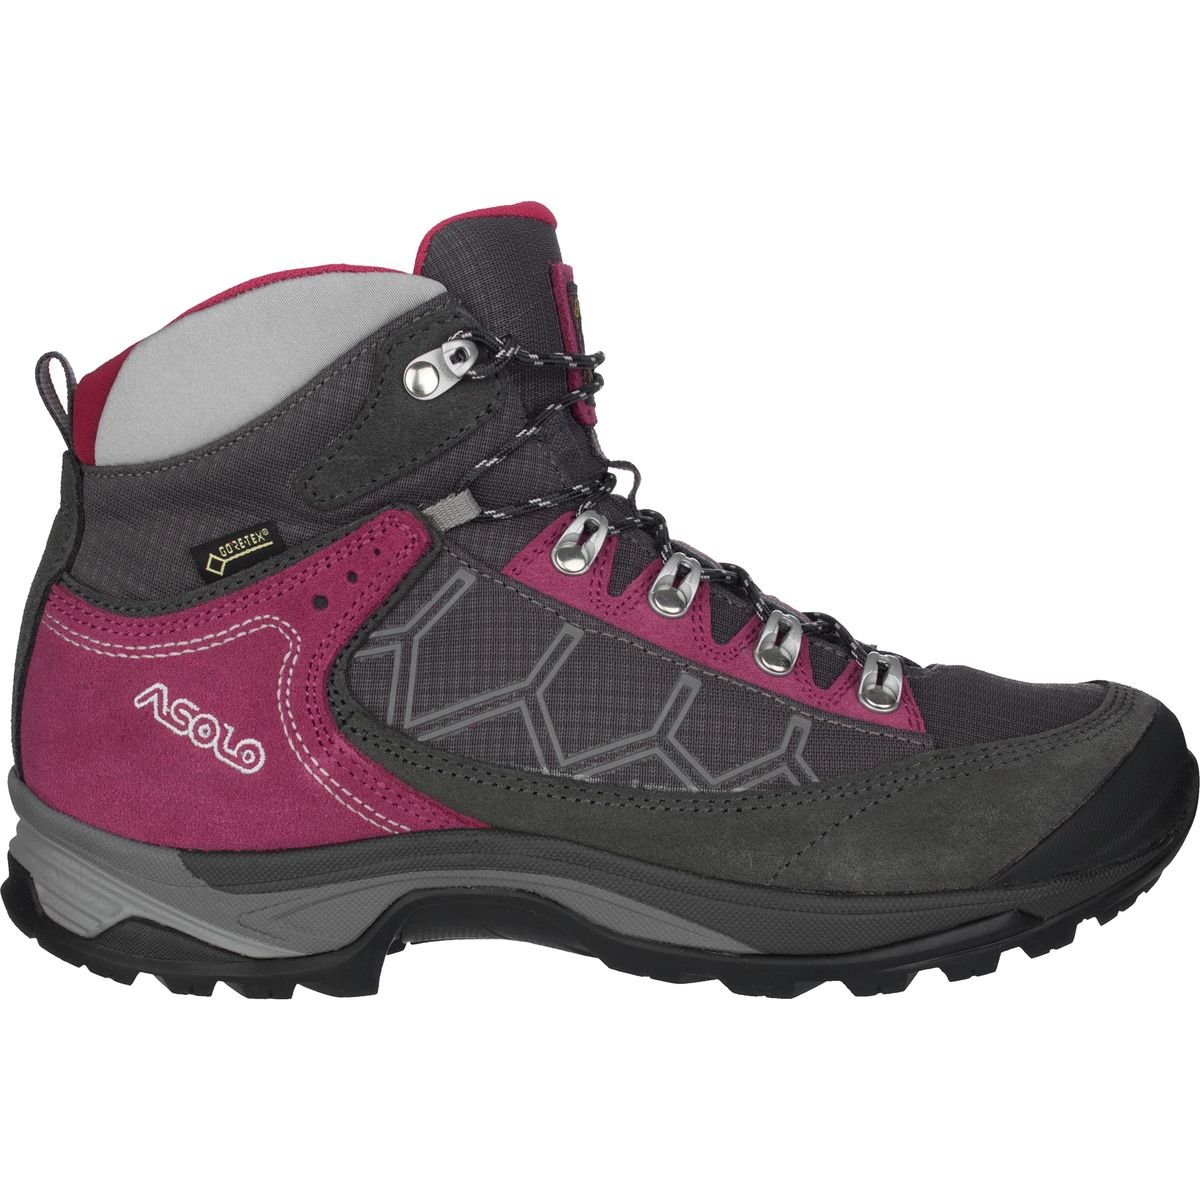 Asolo Women Falcon GV Hiking Boots B00WE3IDCS 7 B(M) US|Graphite/Graphite